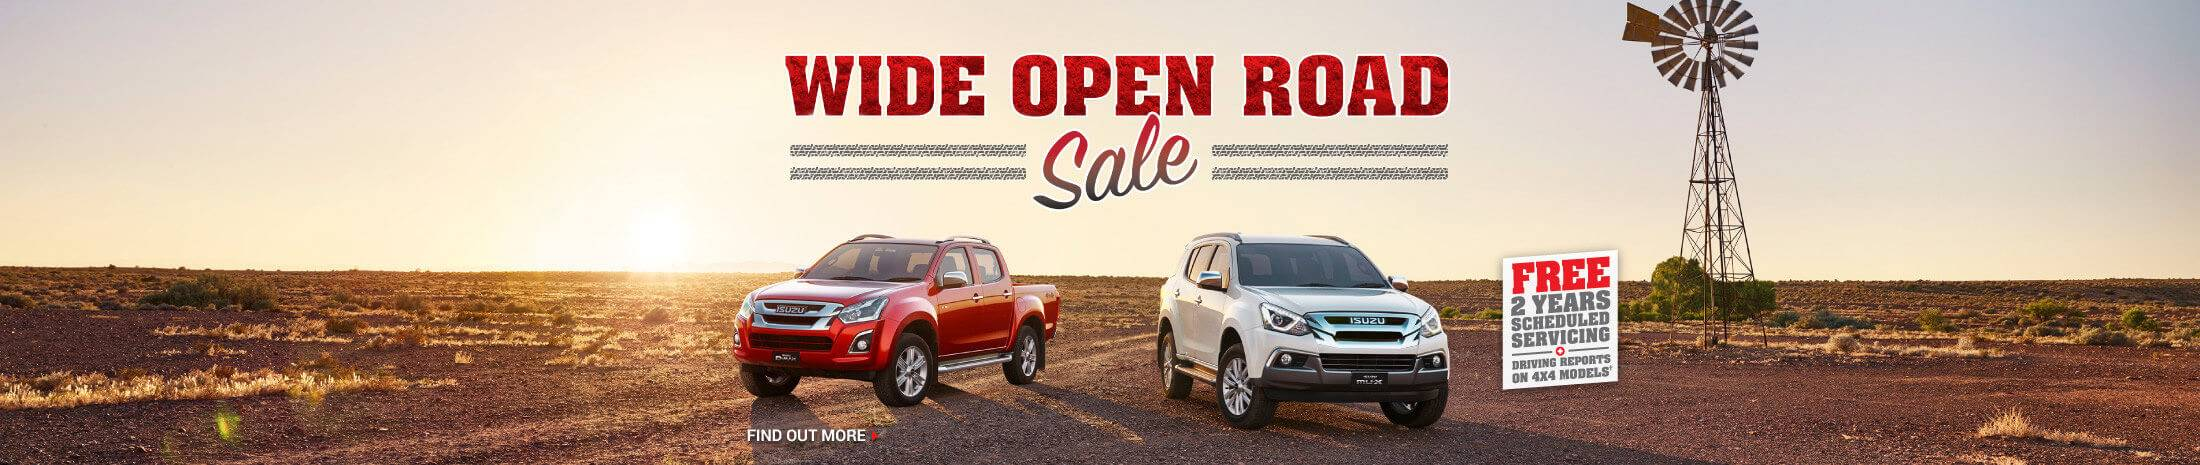 Wide Open Road Sale